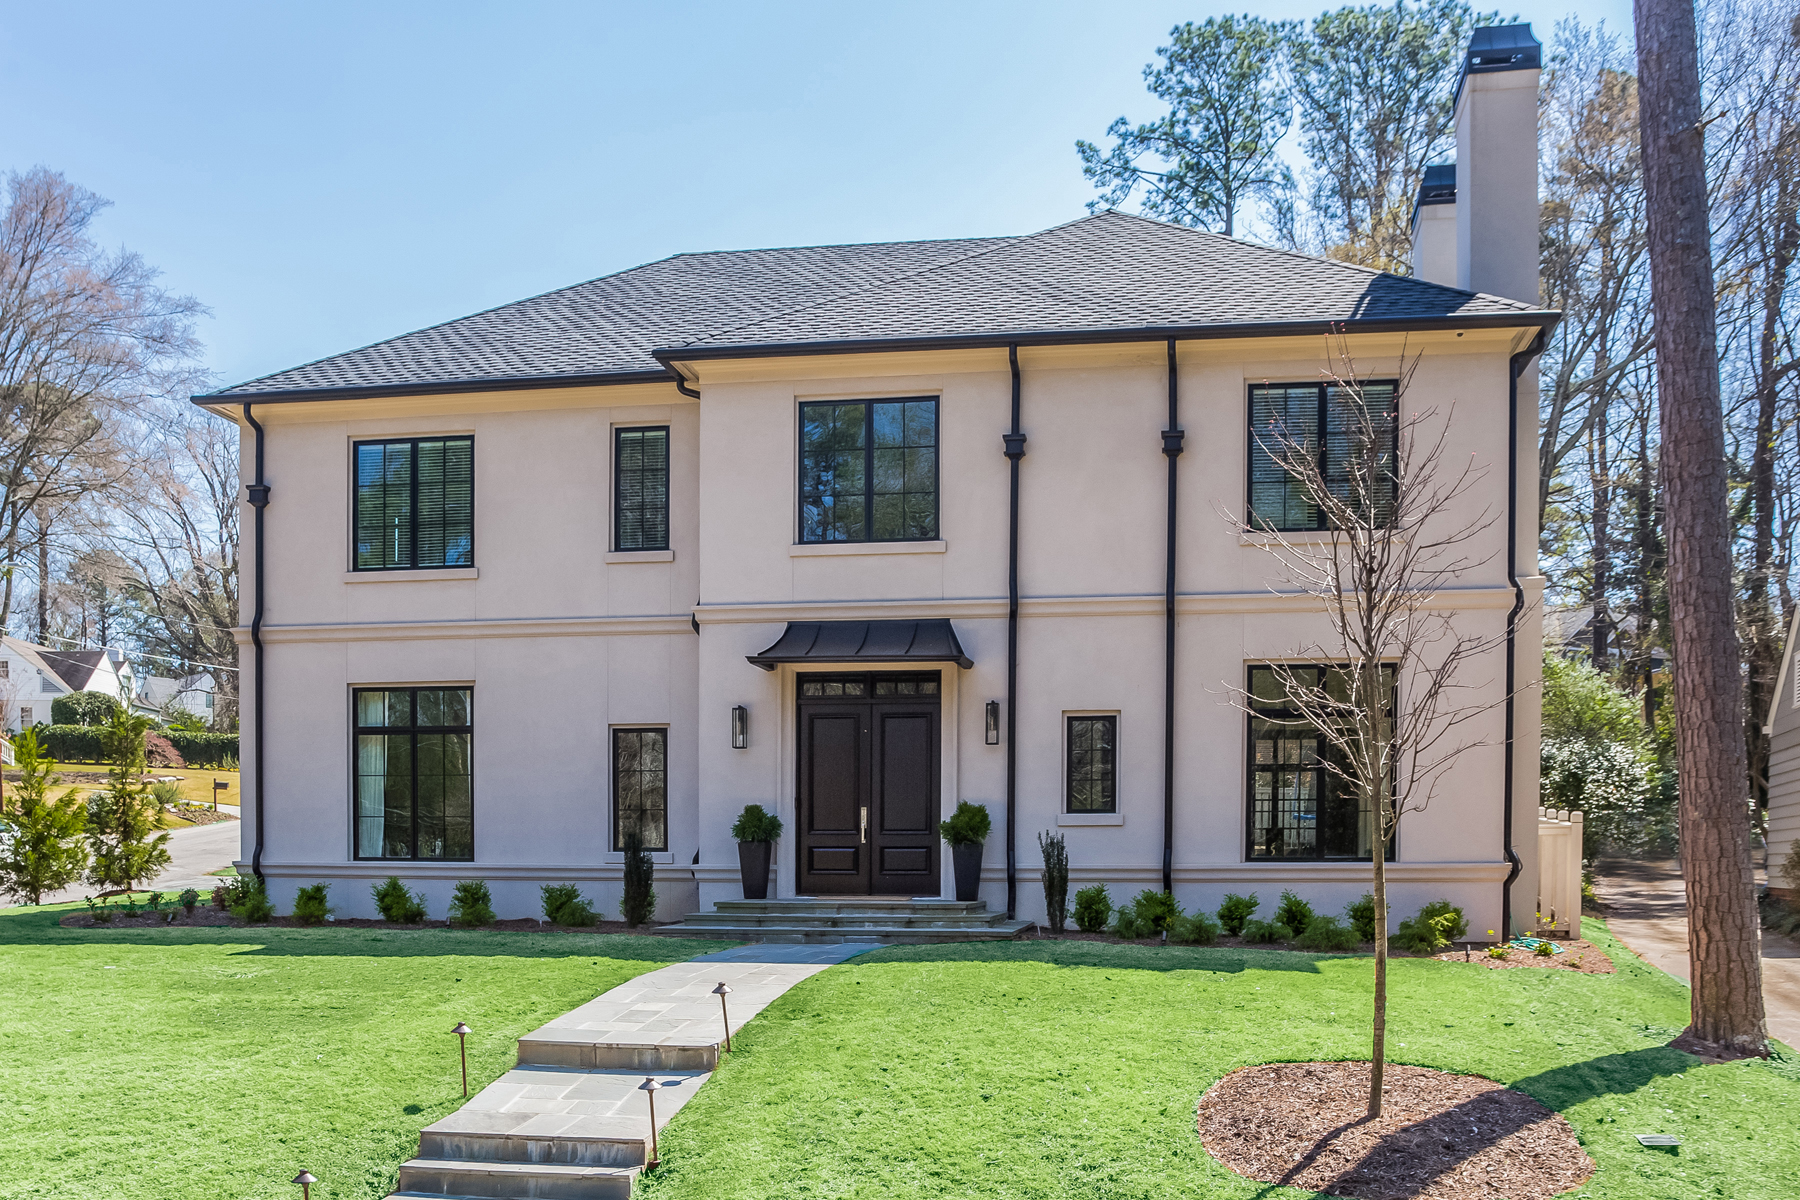 Single Family Home for Sale at Incredible Buckhead Dream Home 779 Greenview Ave Atlanta, Georgia 30305 United States